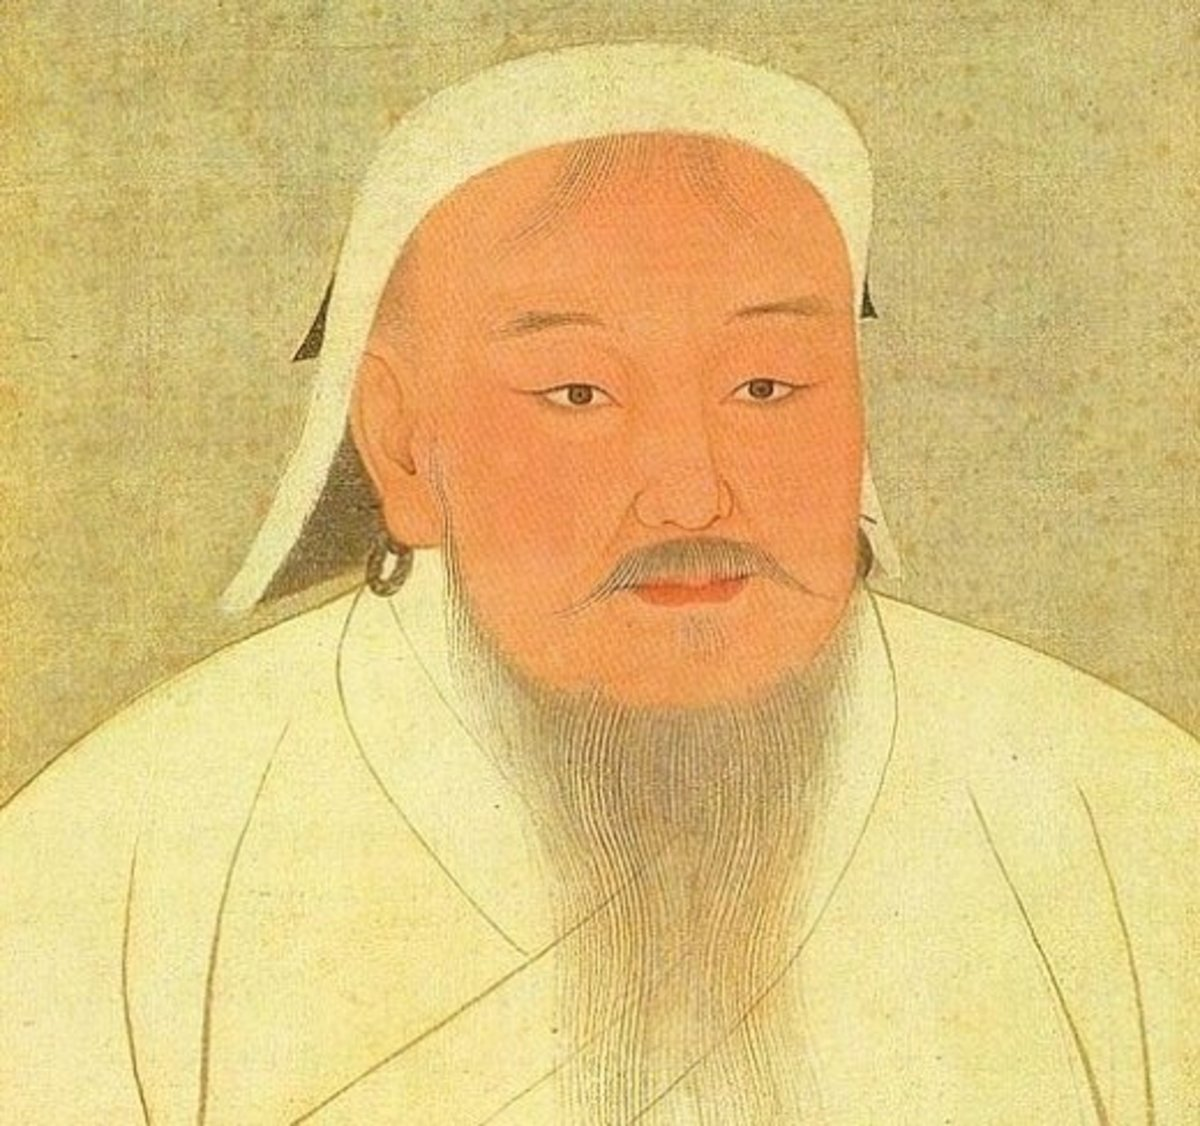 Genghis Khan was Mongol Emperor from 1206 until his death in 1227.